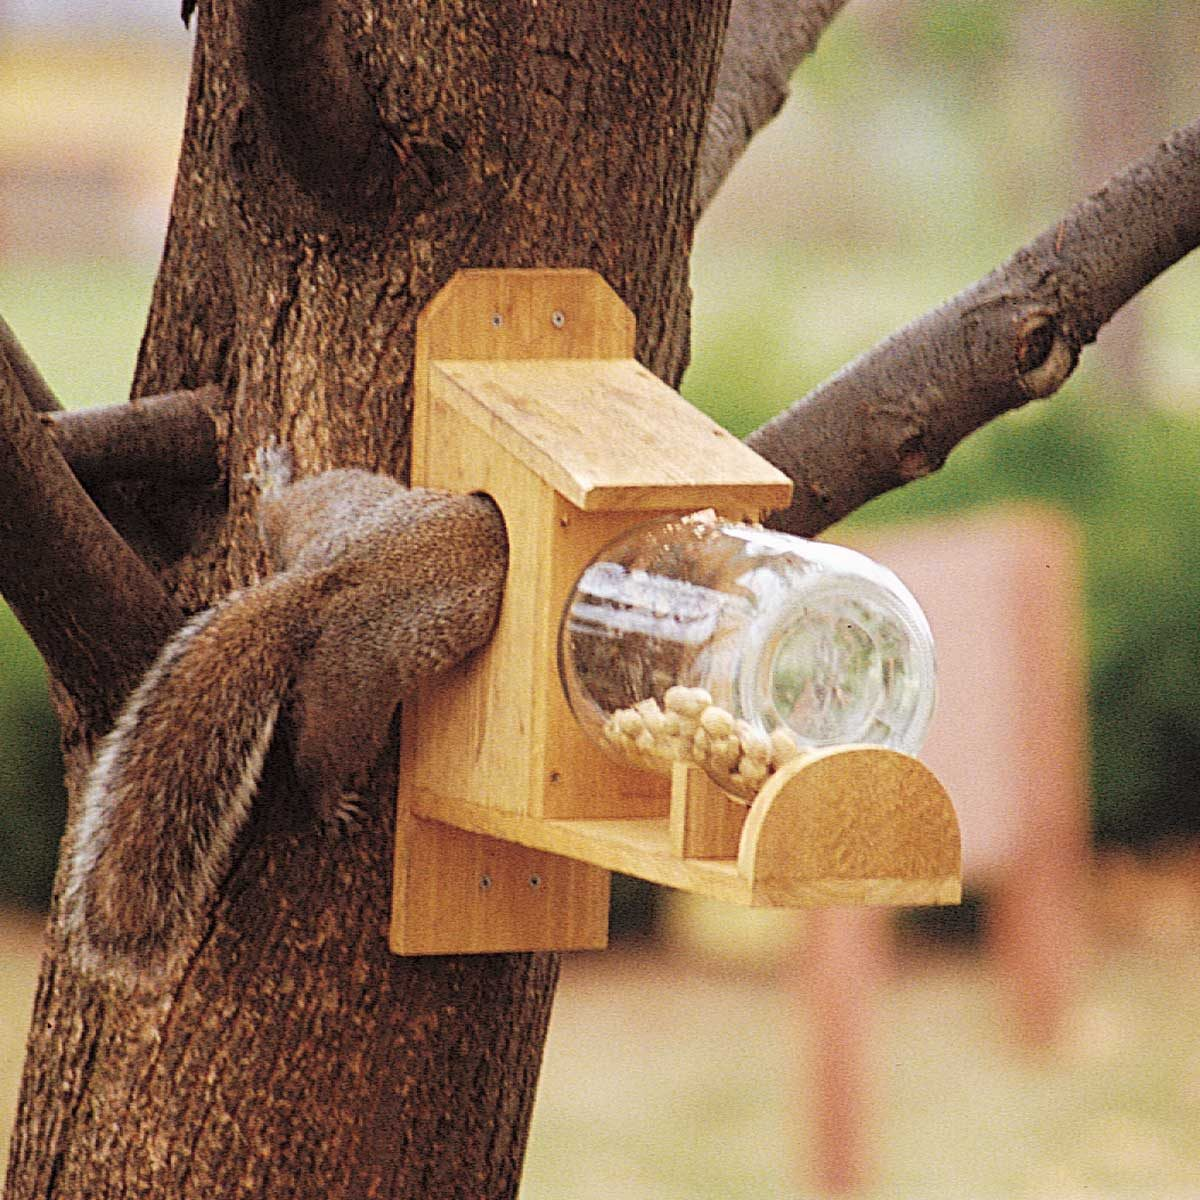 entertaining squirrel feeder half way